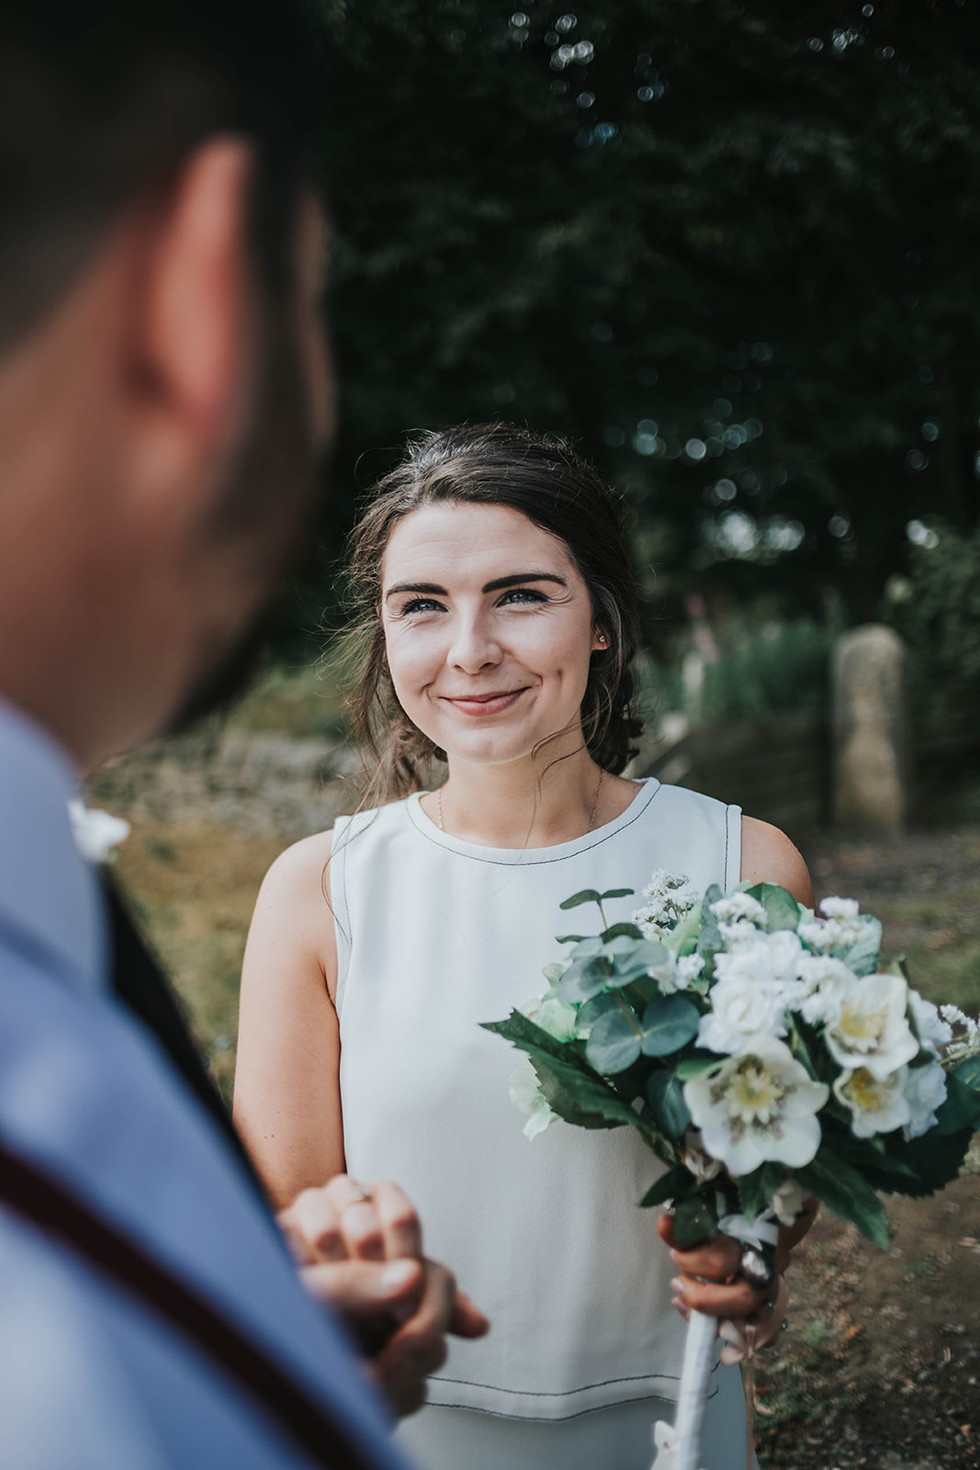 bride holding her bouquet and looking at the groom